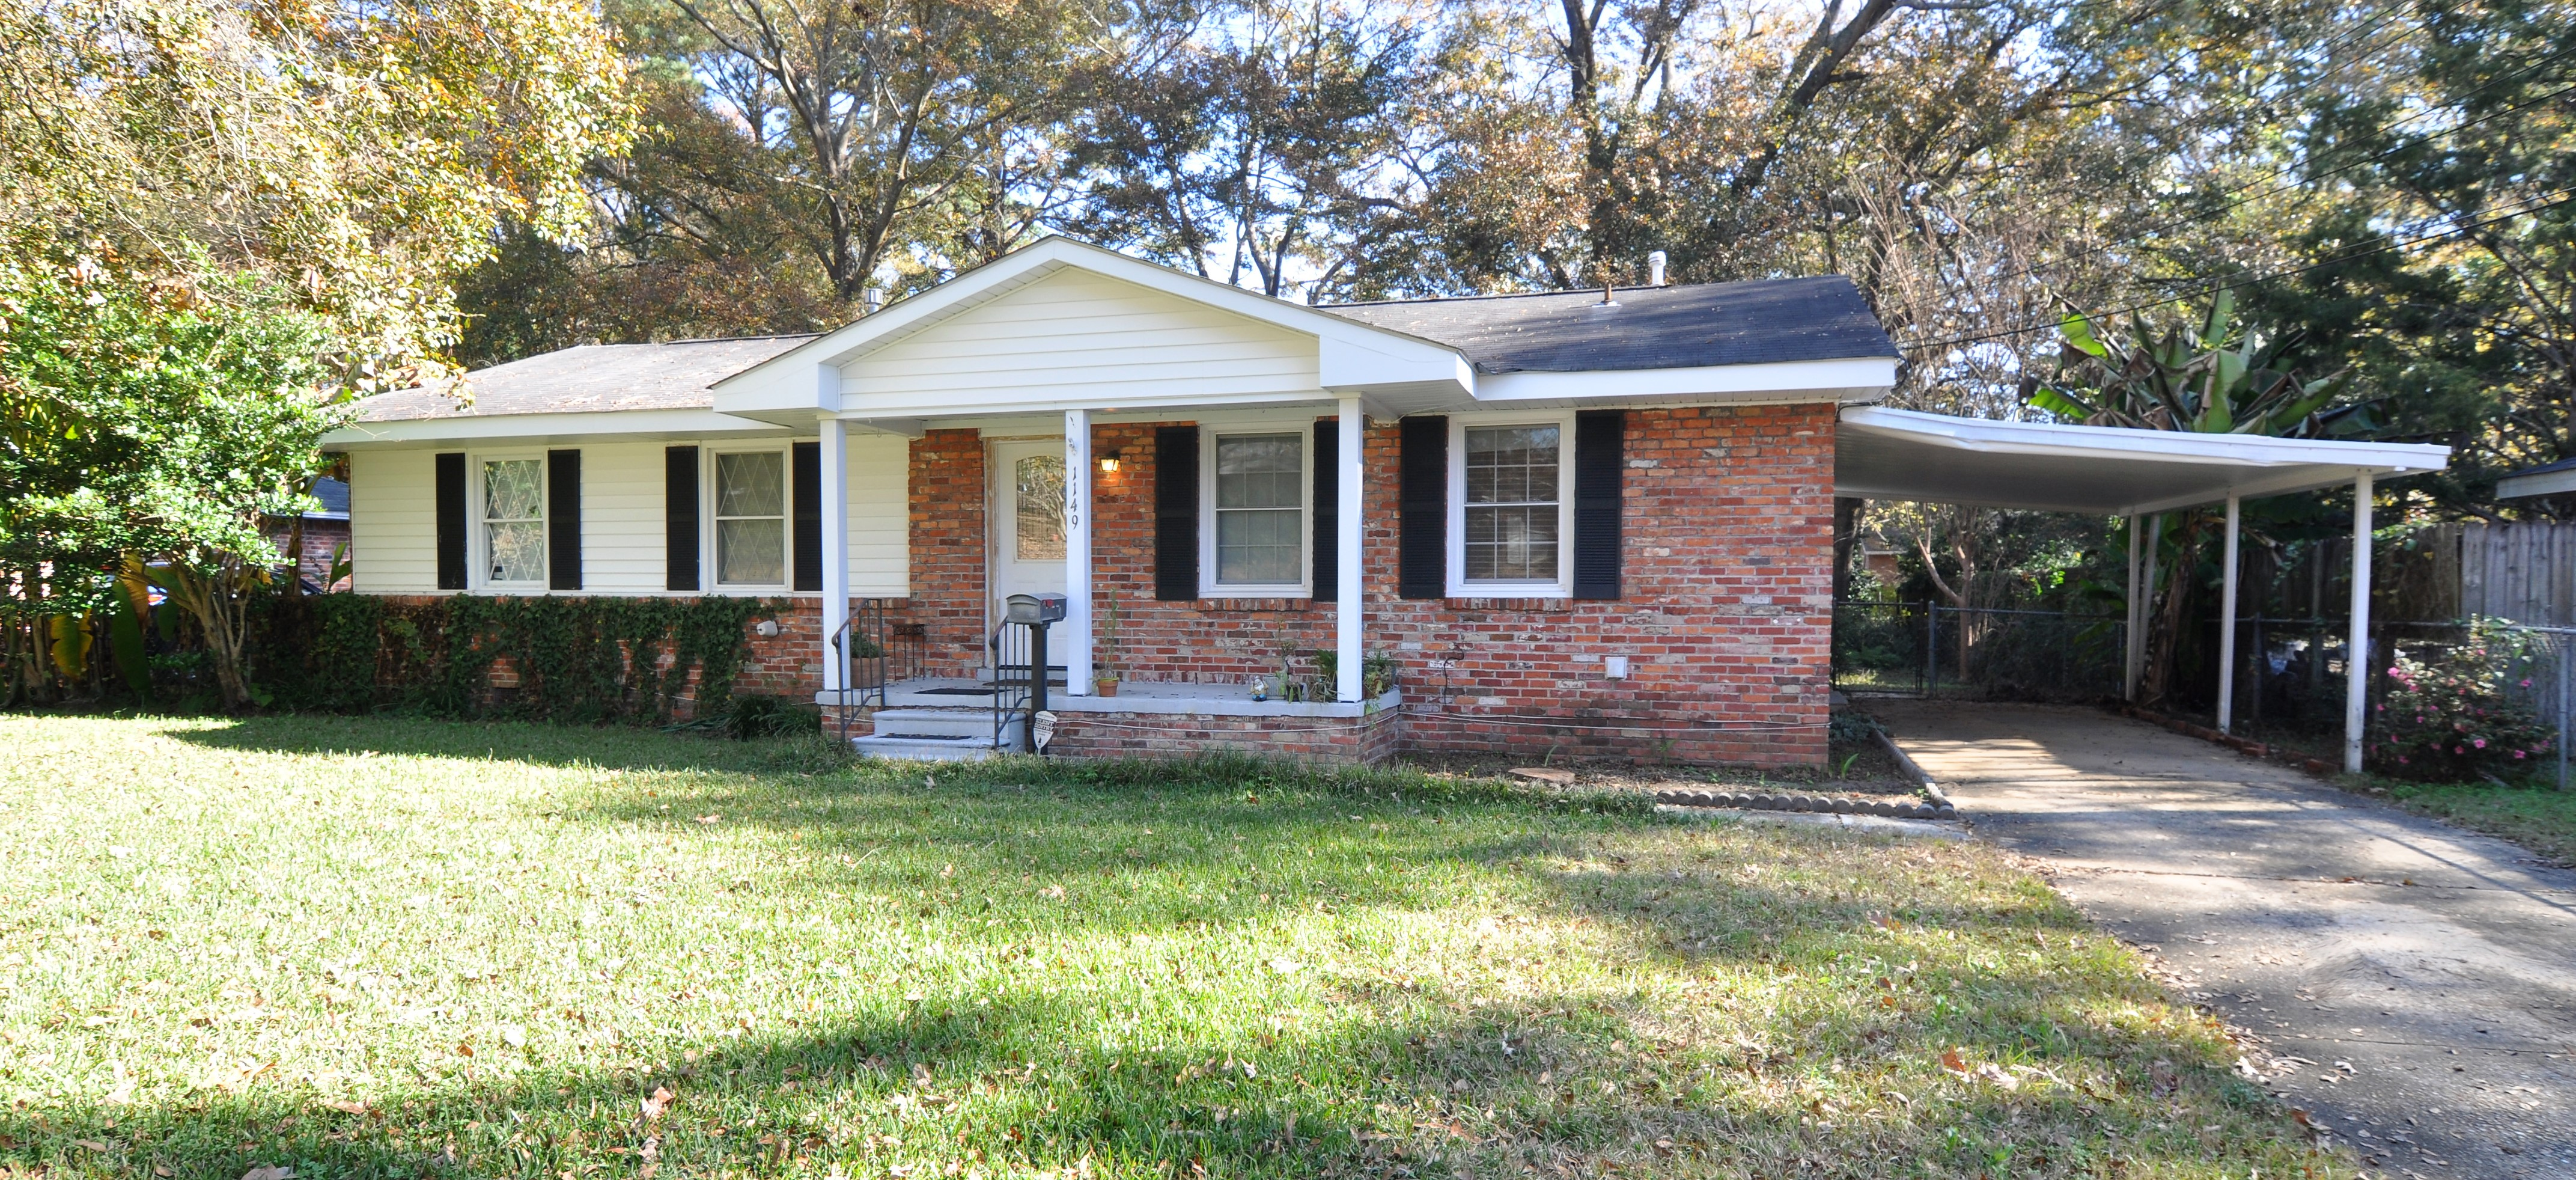 FOR SALE IN MONTGOMERY! 3 BEDROOM 1 BATH AT 1149 BETH MANOR DRIVE